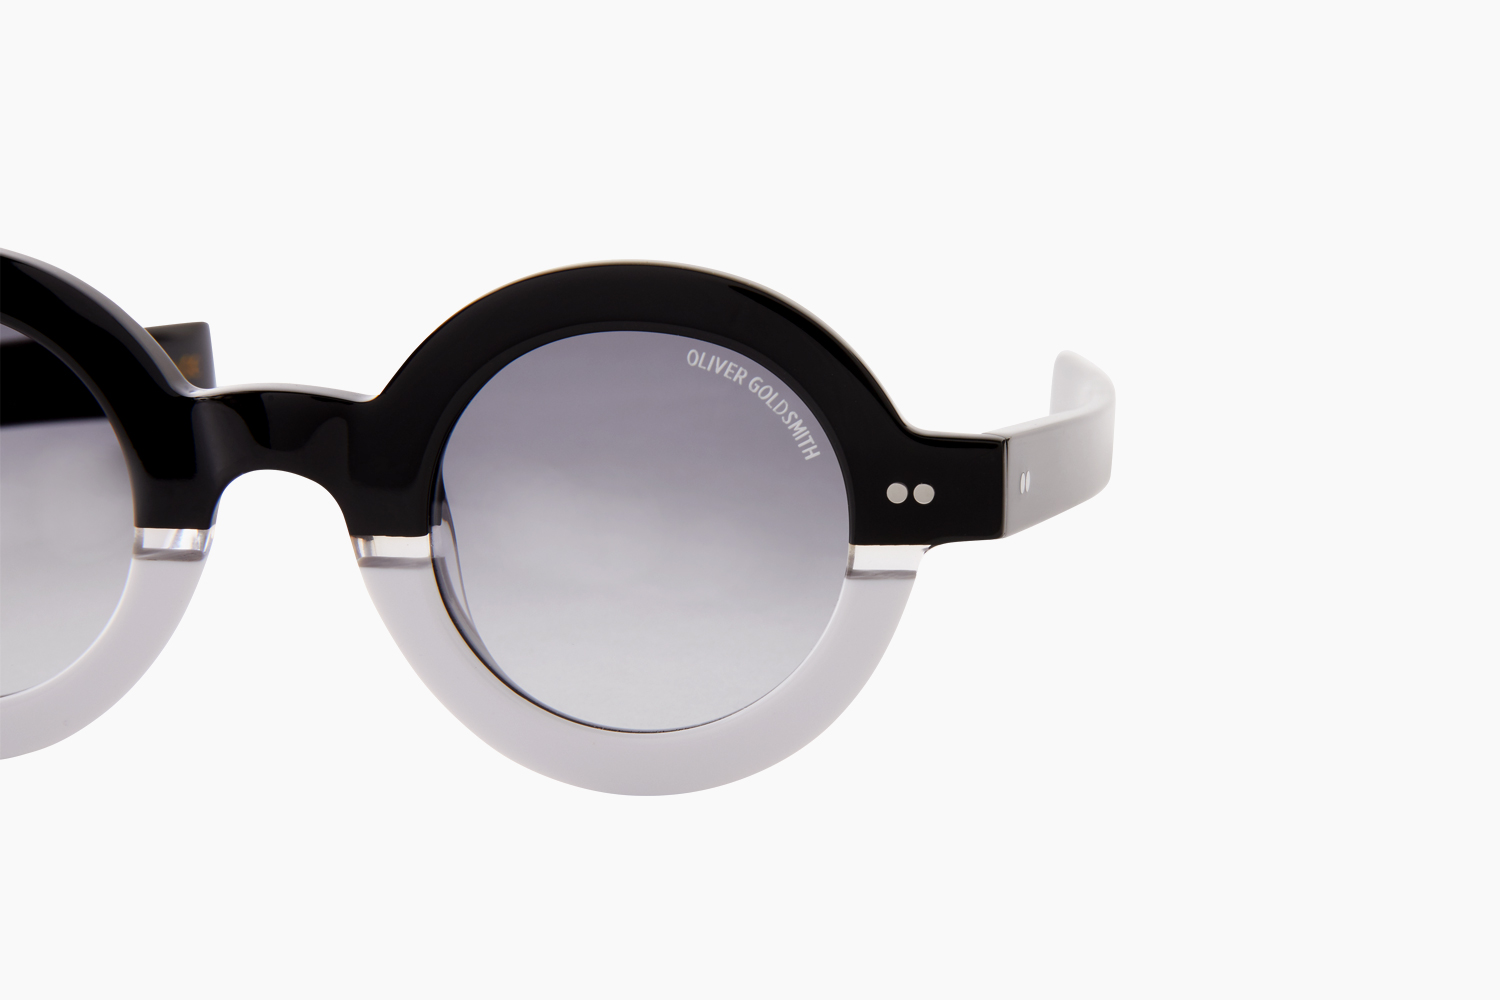 THE1930s - Floating Monochrome|OLIVER GOLDSMITH